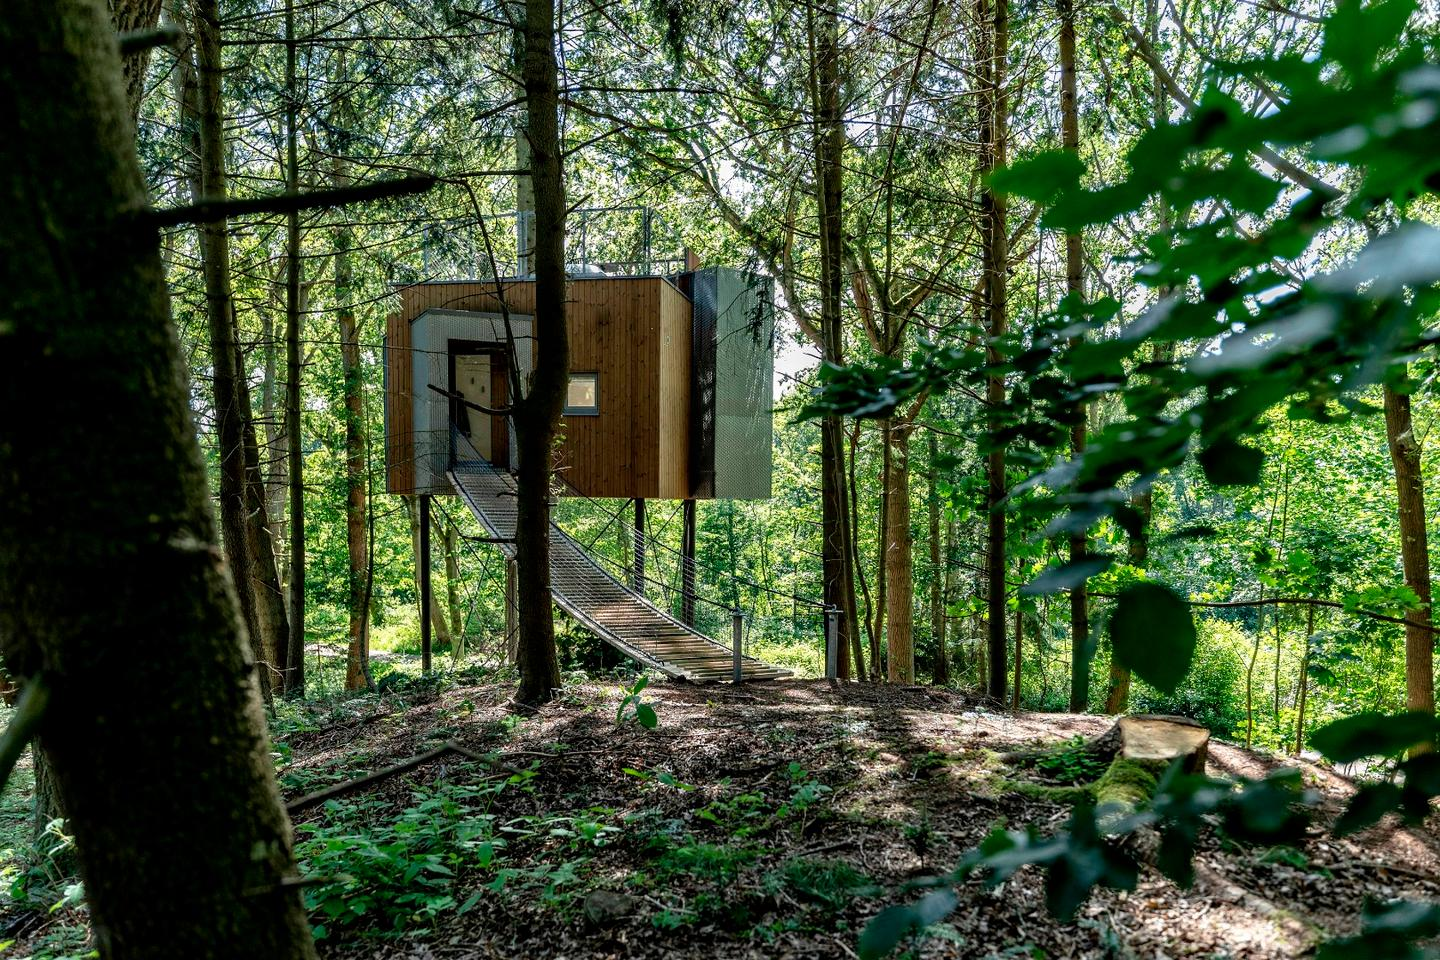 Berlin-based architect Sigurd Larsen has finished the first of a charming cluster of cabins set amongst a forest canopy in his homeland of Denmark